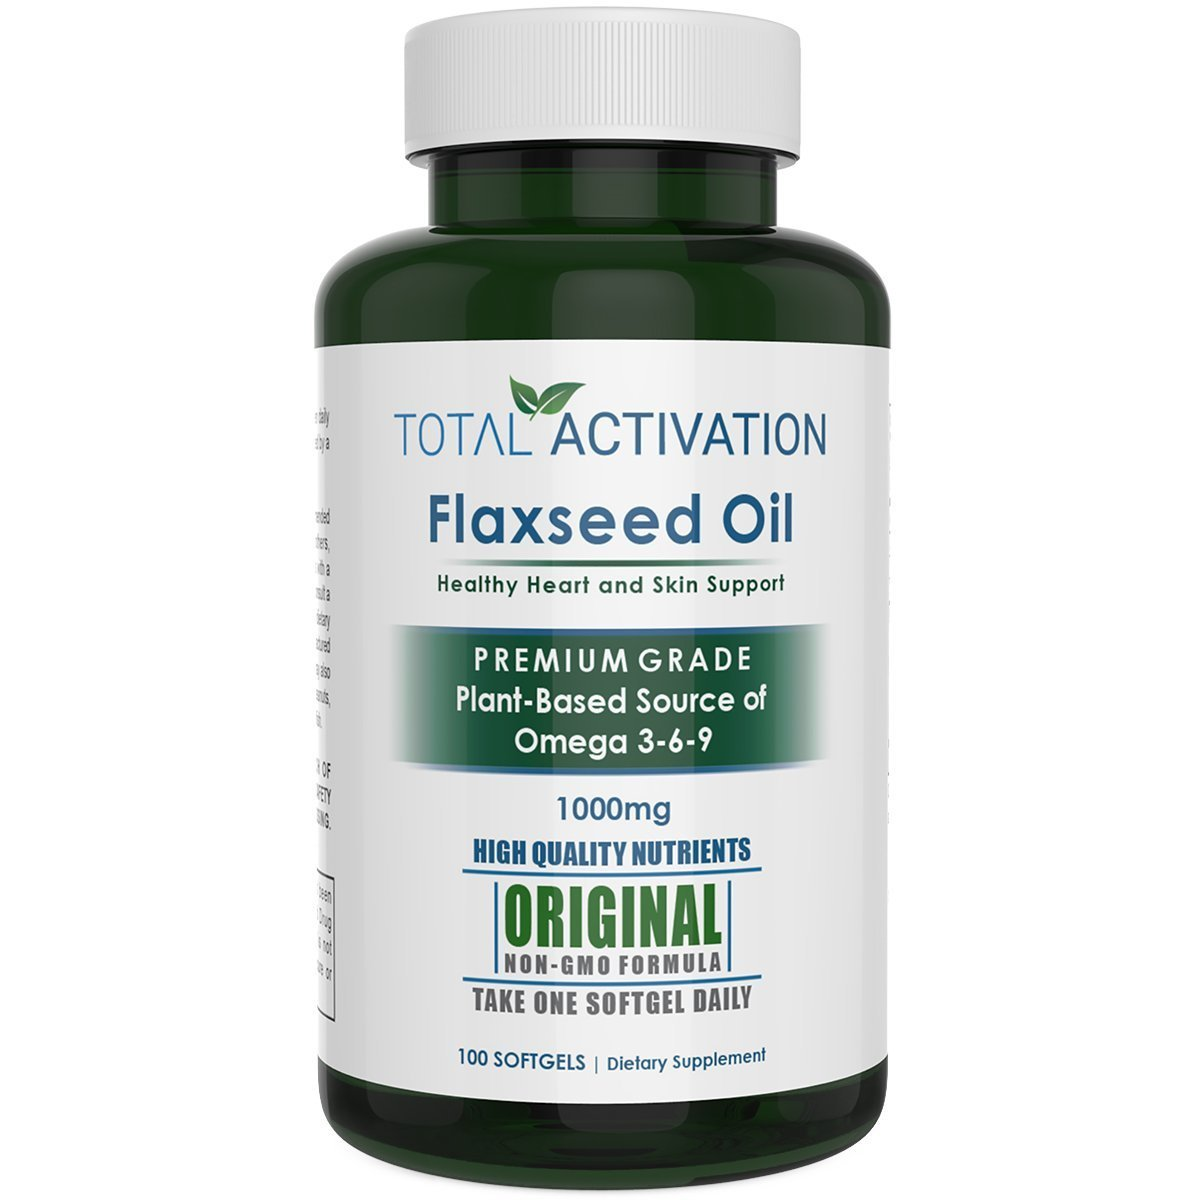 Organic Flaxseed Oil 1,000 mg Omega-3 Rich Liquid Softgel Capsules - Supports Healthy Heart, Hair, Skin and Nails - Immune System Booster with Omega 3,6,9 from natural ALA, 100 Softgels per Bottle